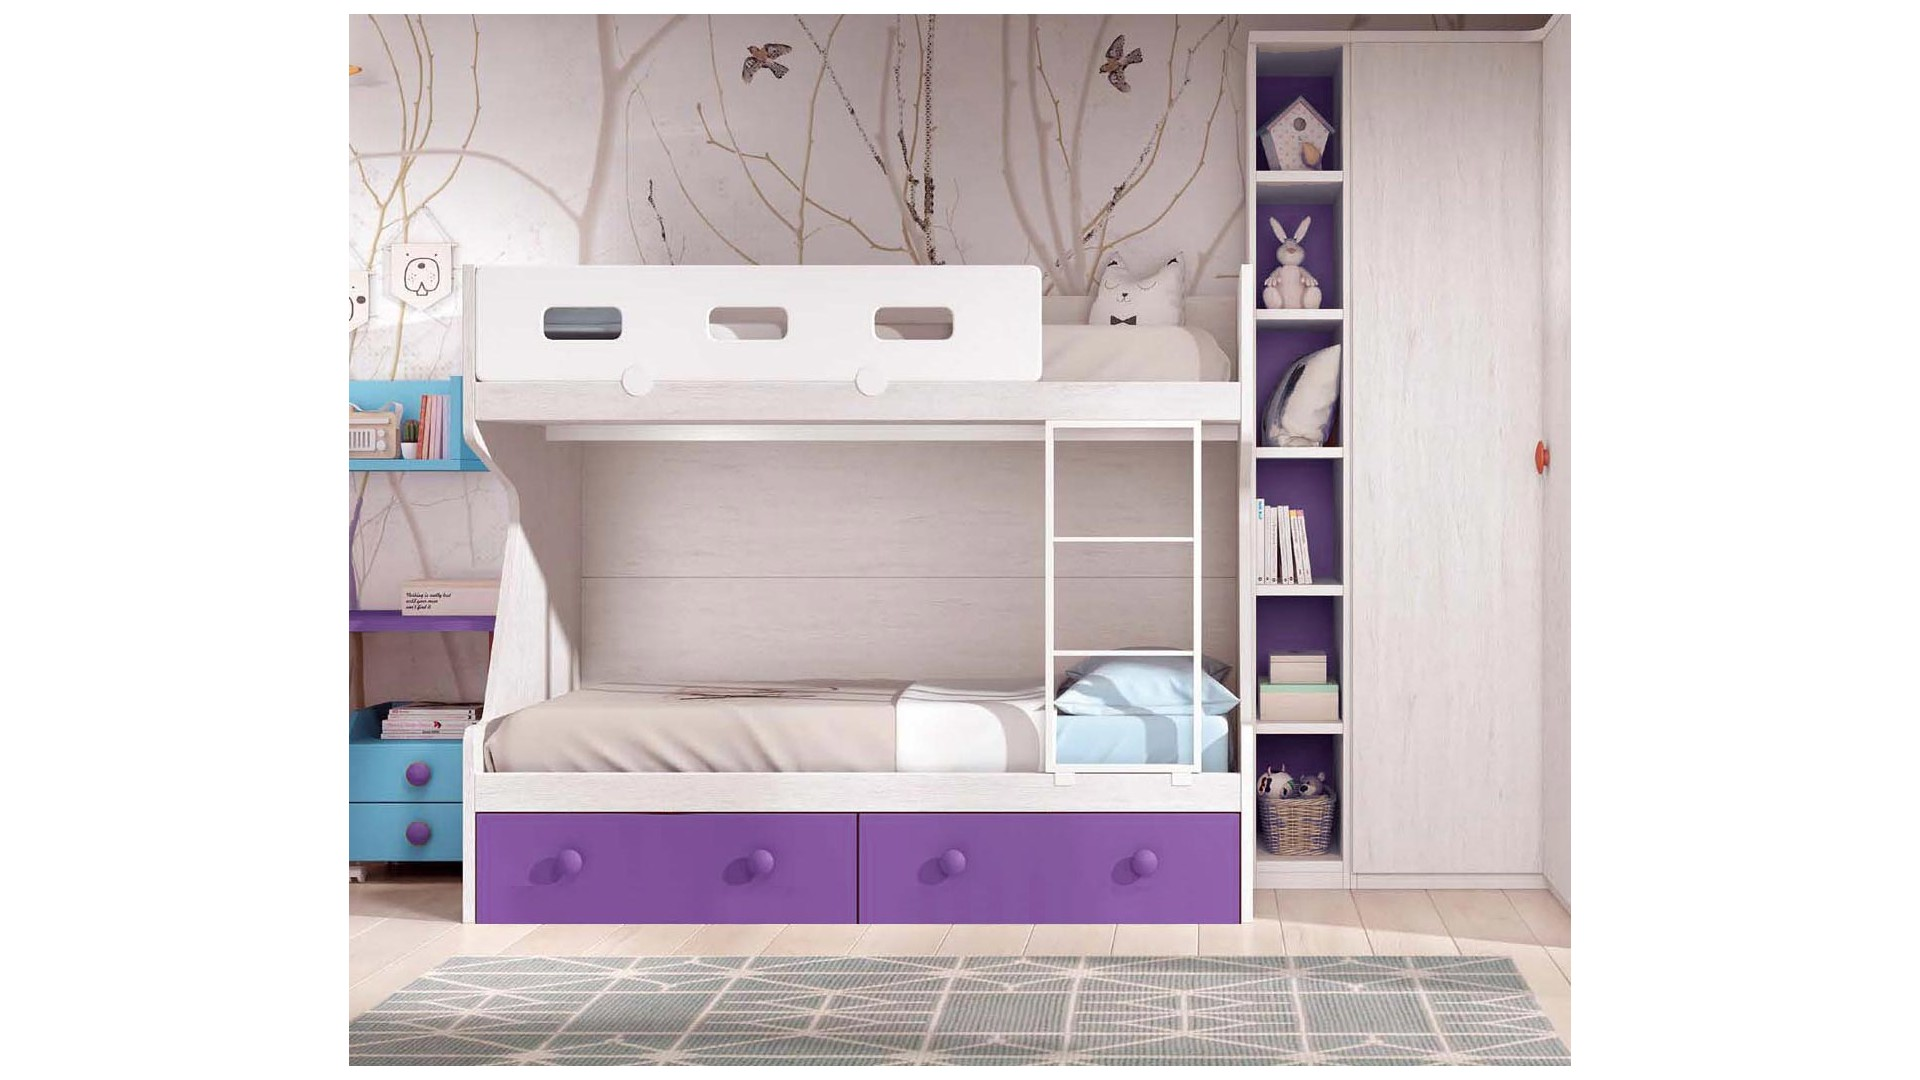 lits superpos s enfants fun et super pratique glicerio so nuit. Black Bedroom Furniture Sets. Home Design Ideas